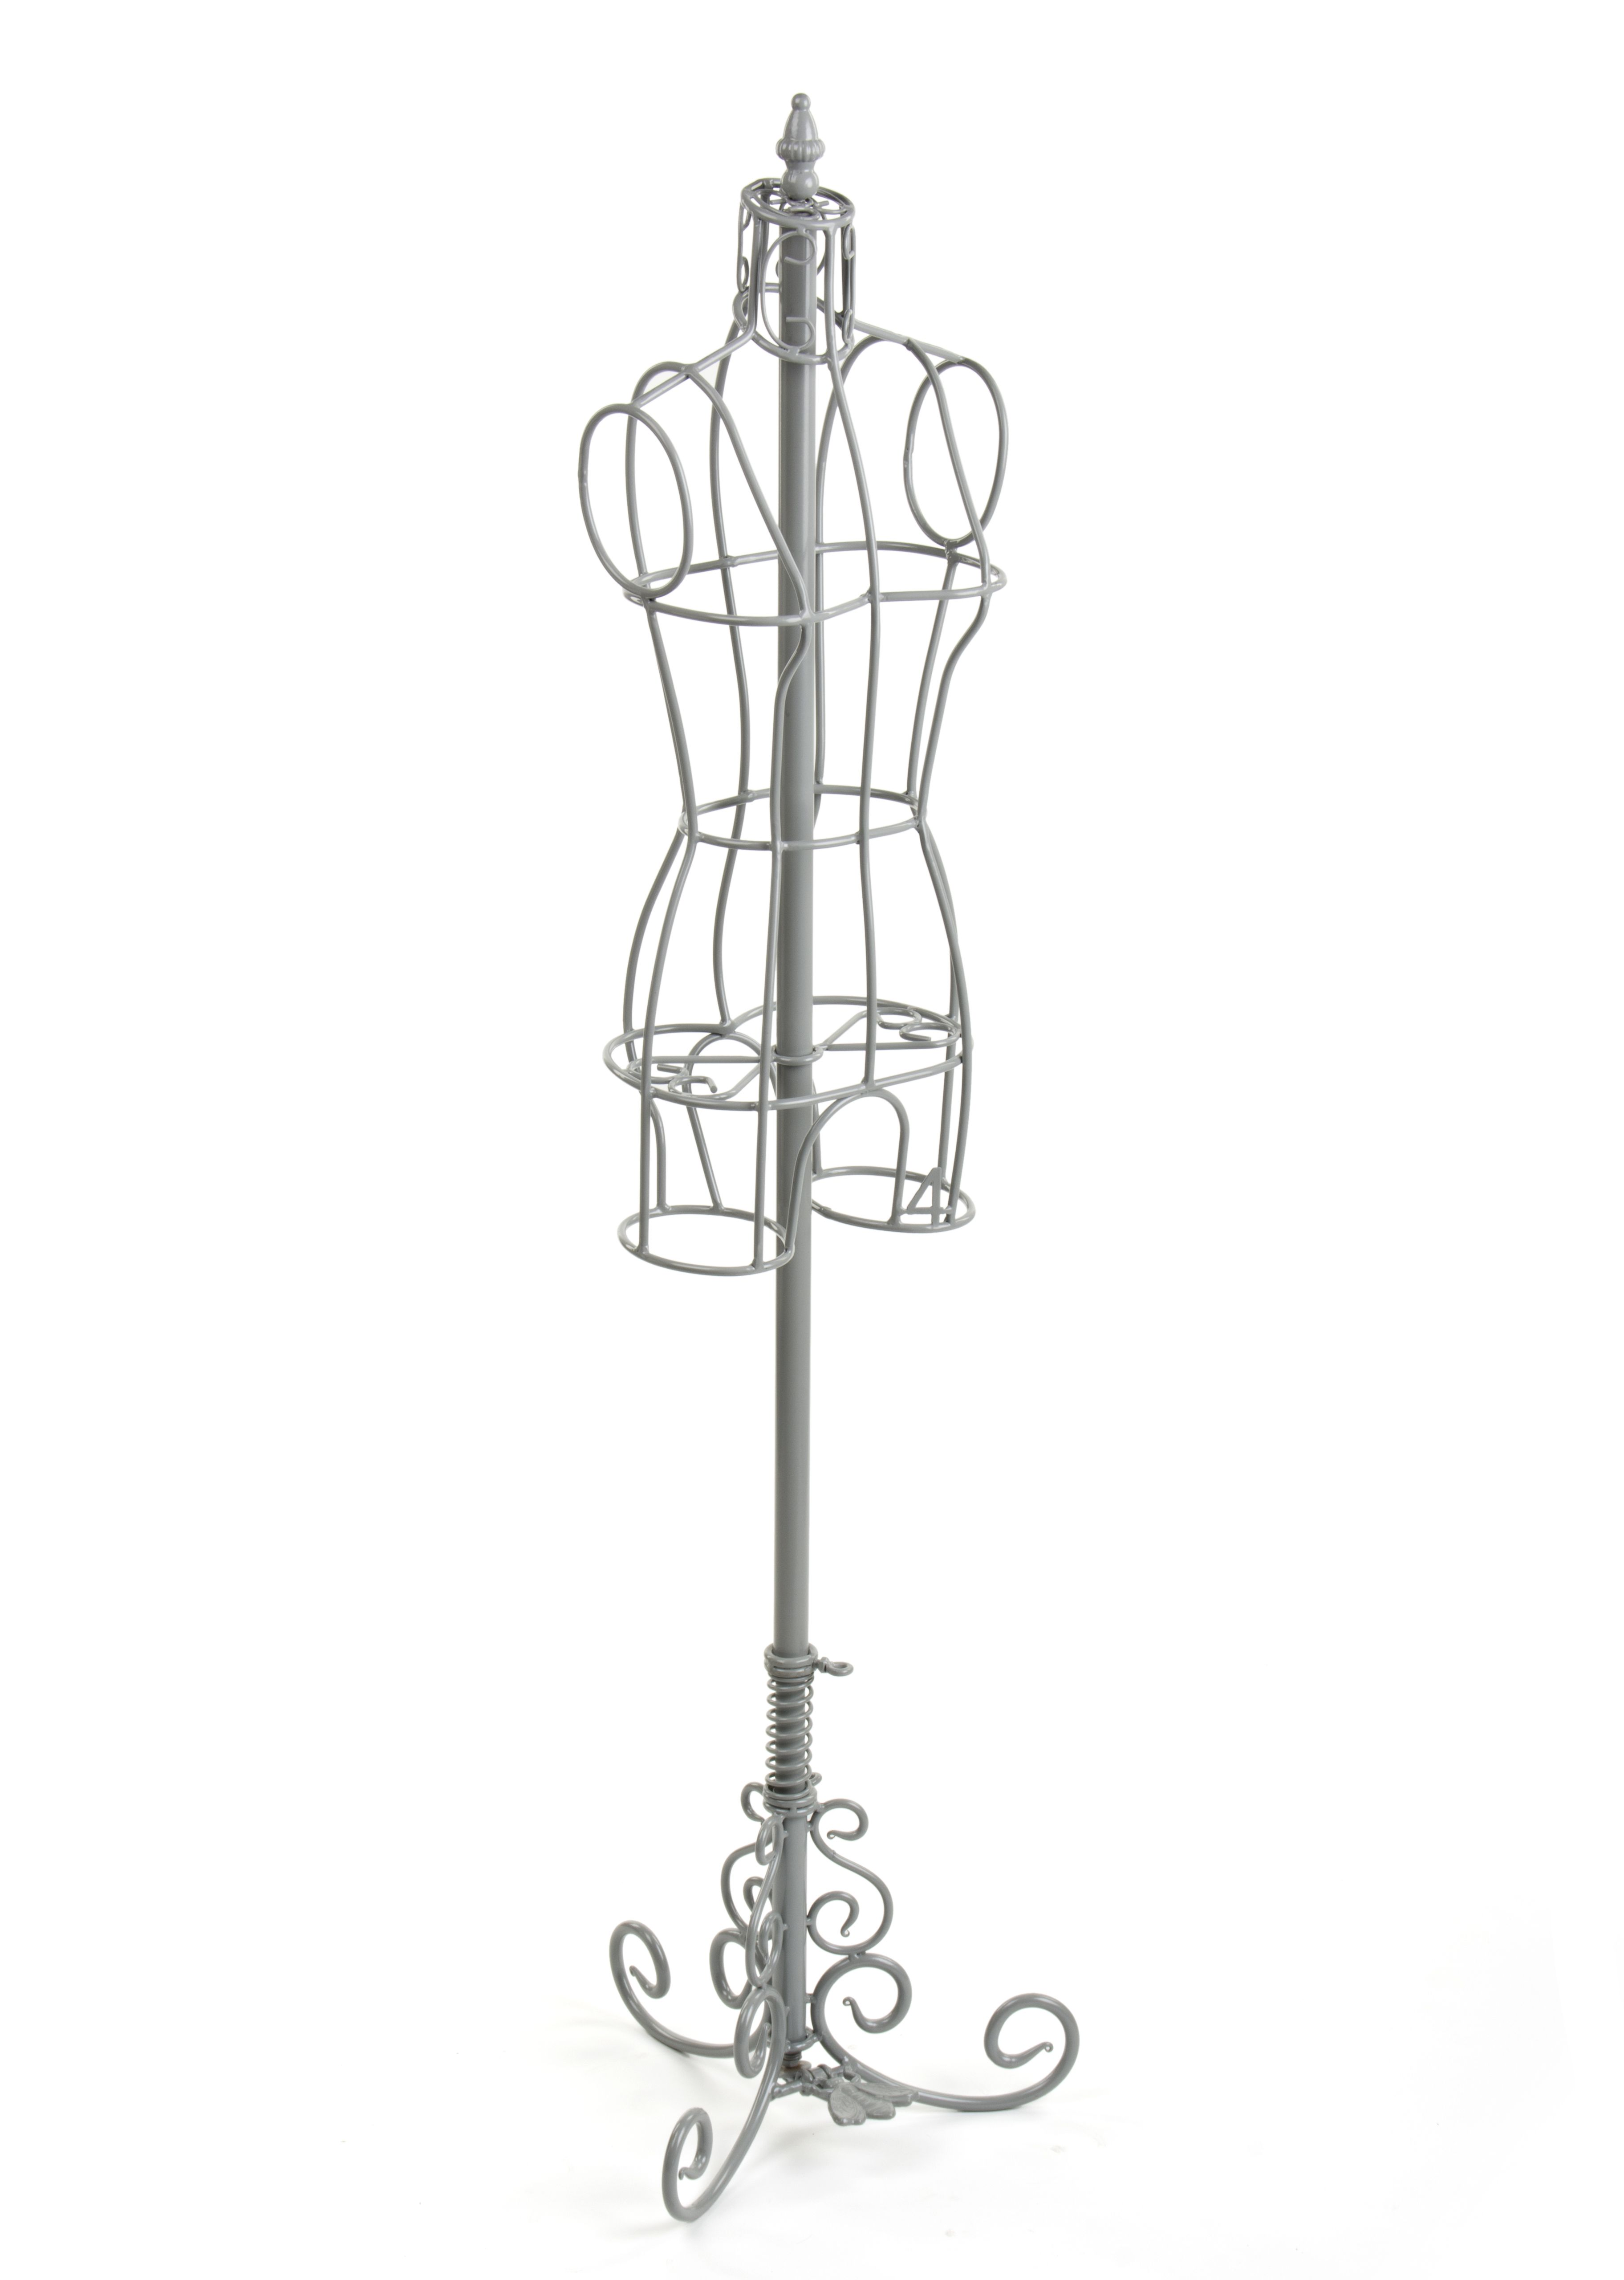 Female Dress Form with Stand, Wrought Iron, Size 4 - Gray | Dress ...